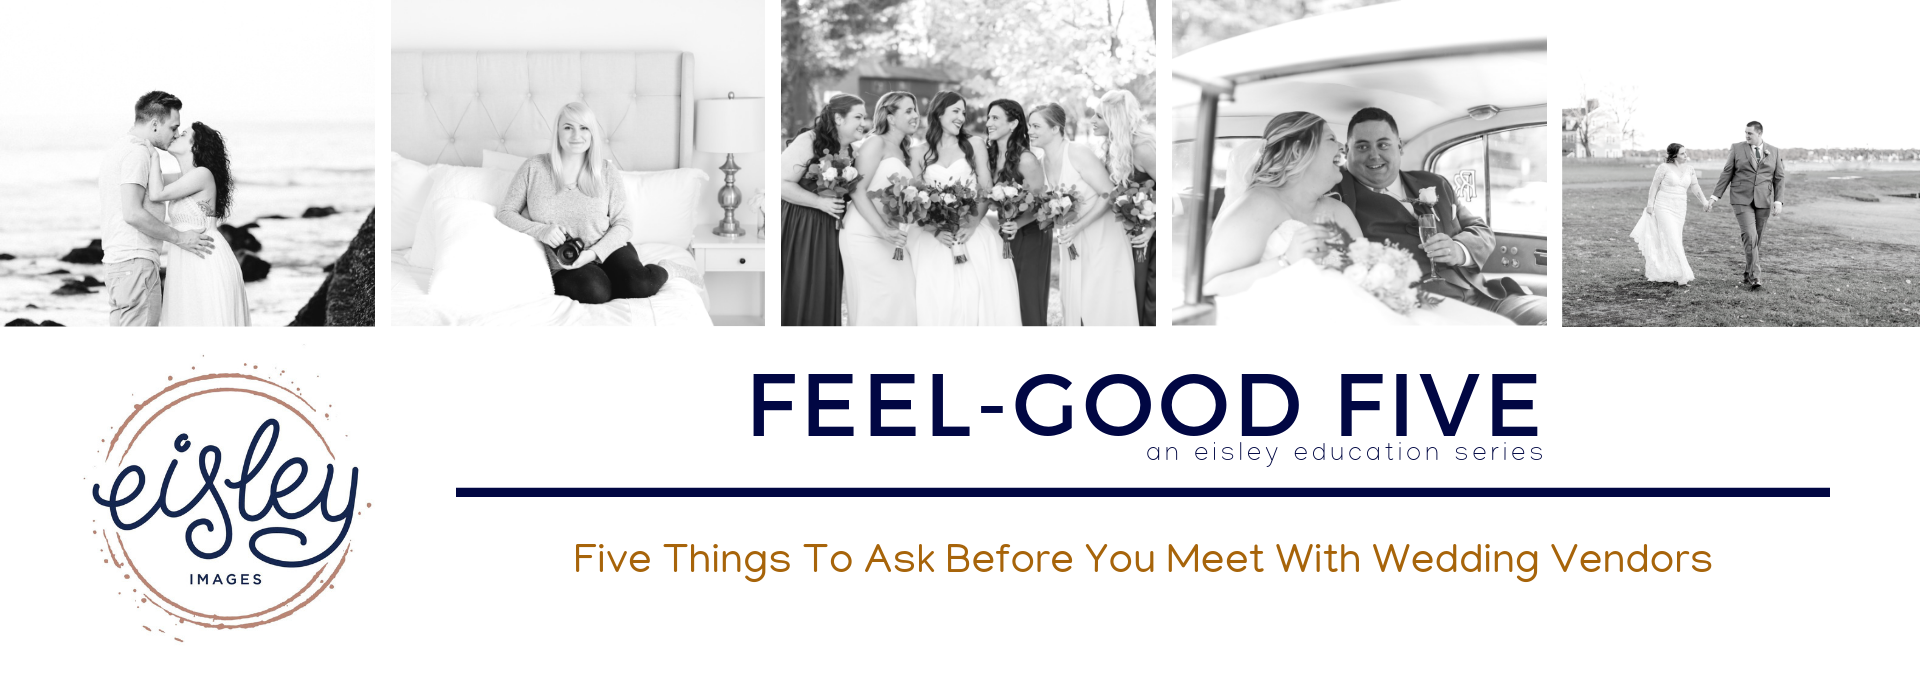 eisley-images- client education wedding vendor questions to ask